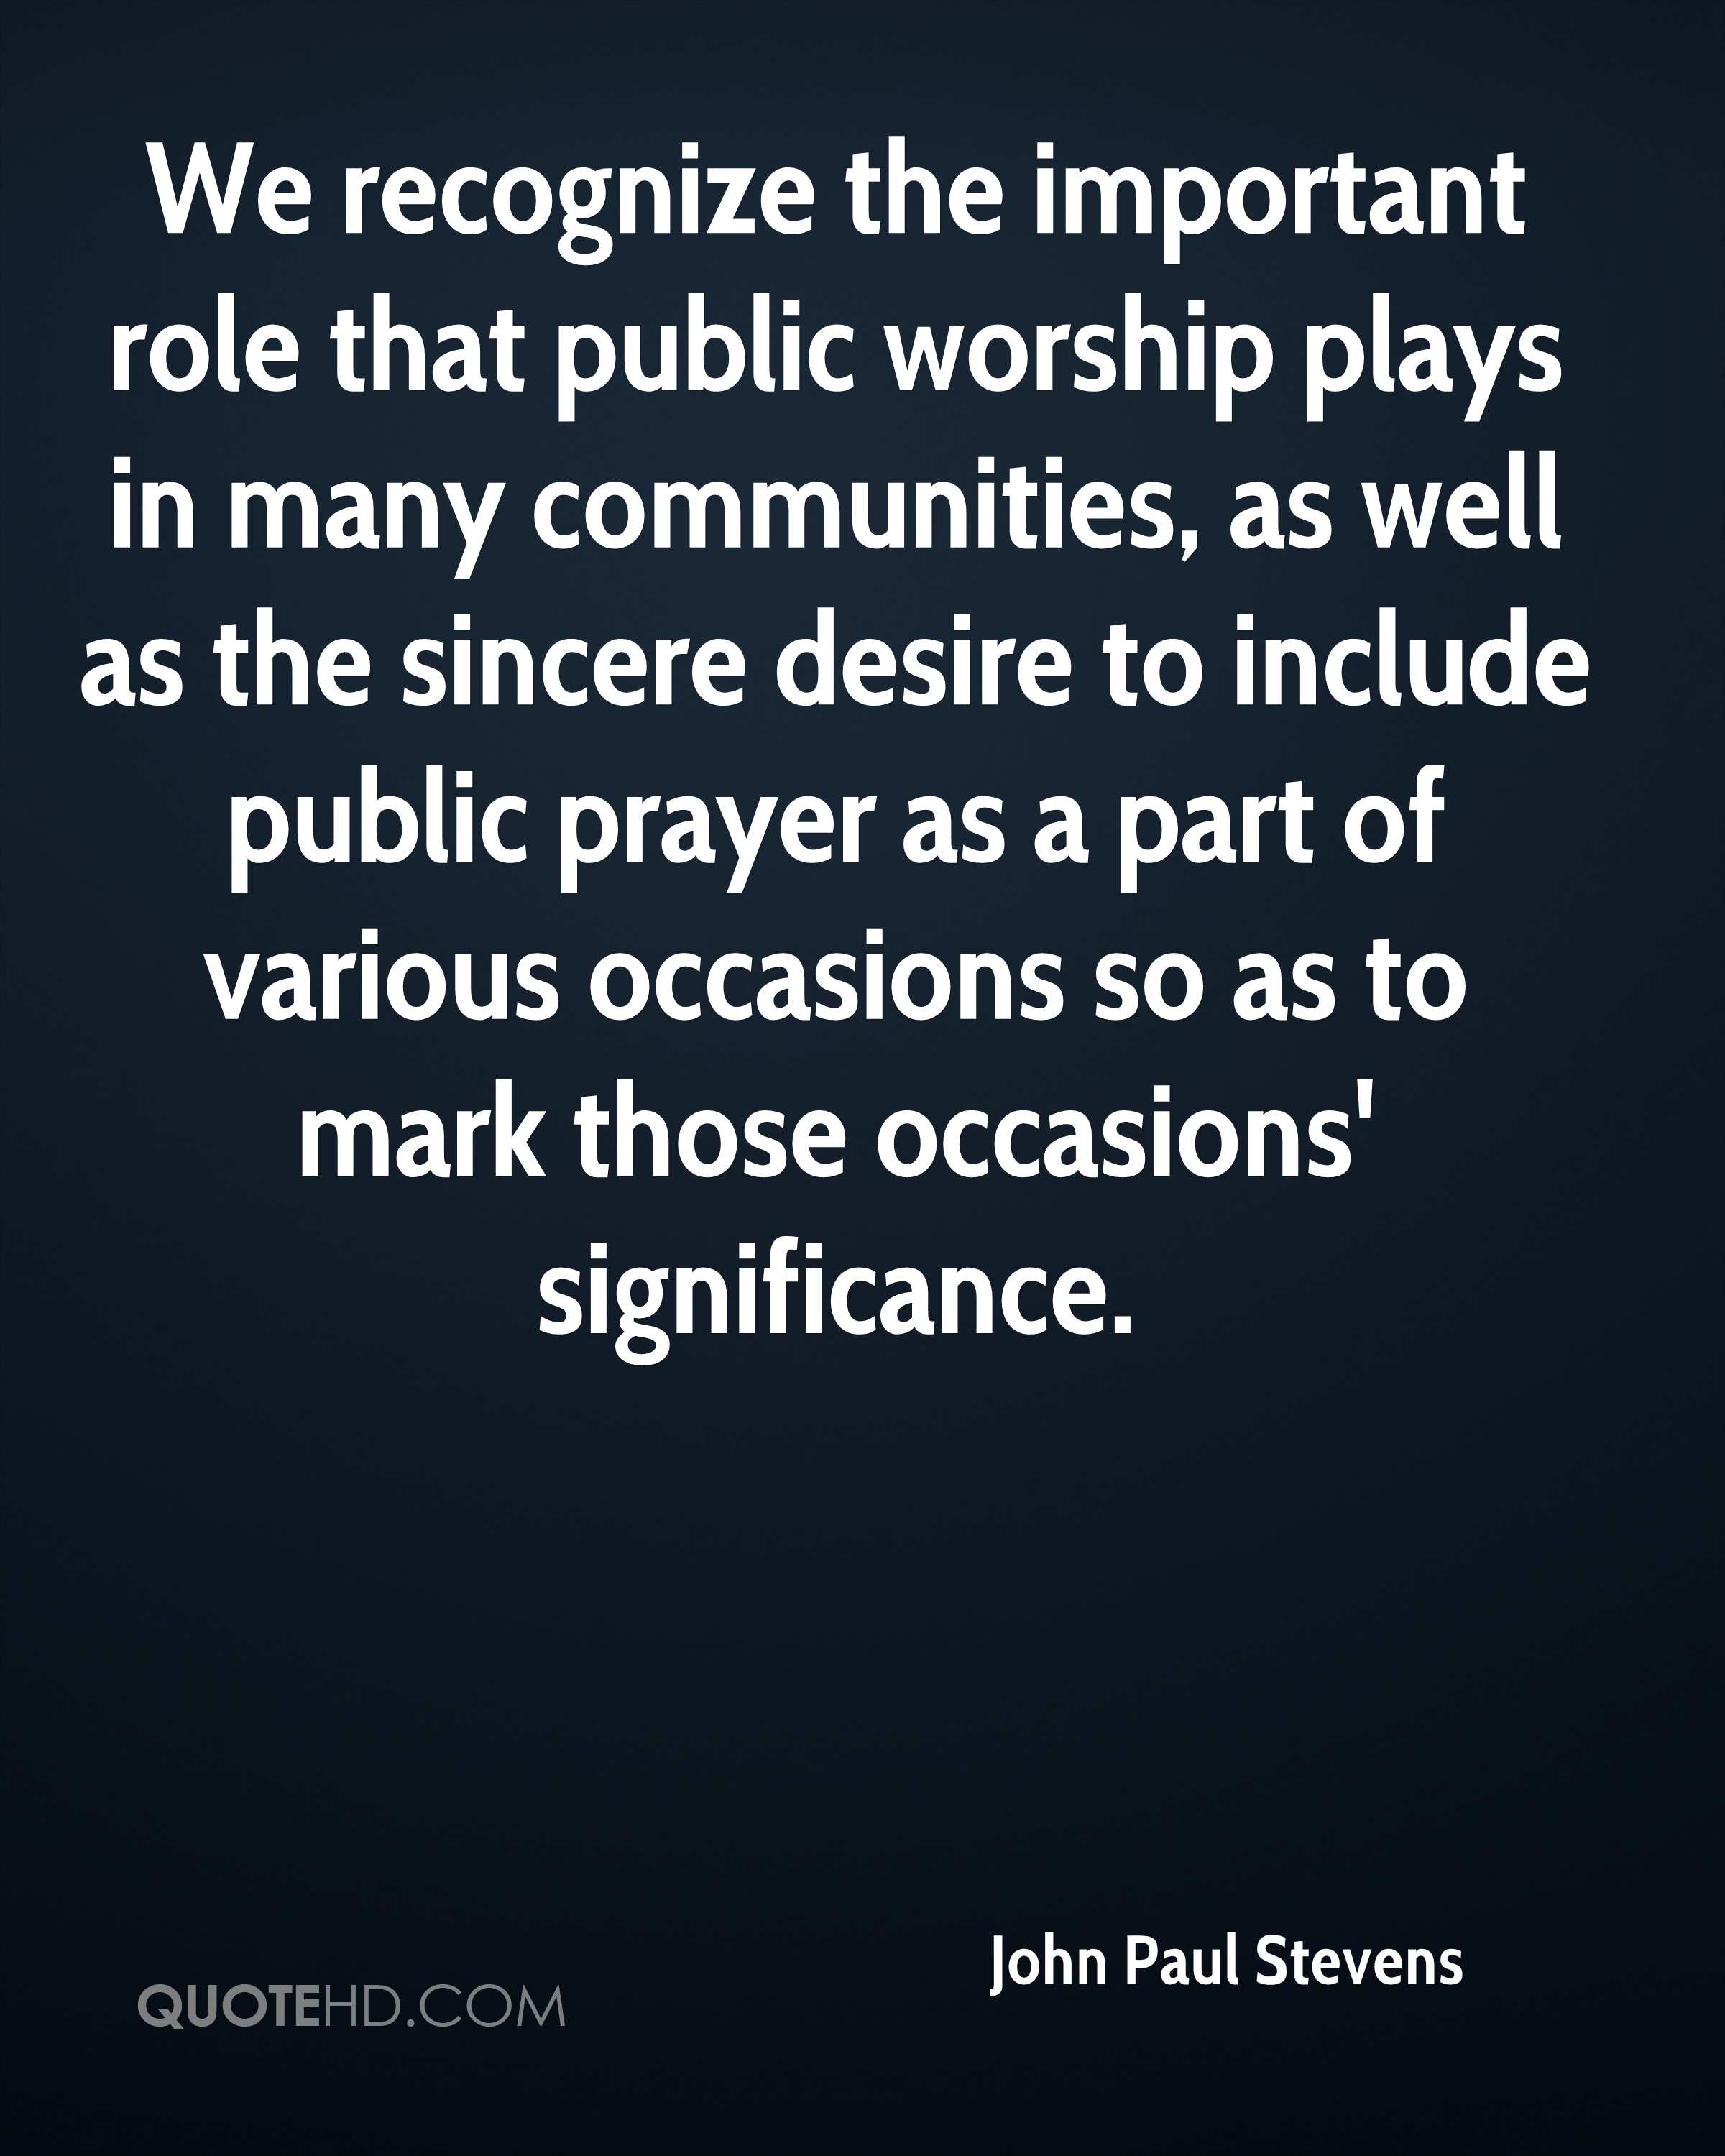 We recognize the important role that public worship plays in many communities, as well as the sincere desire to include public prayer as a part of various occasions so as to mark those occasions' significance.